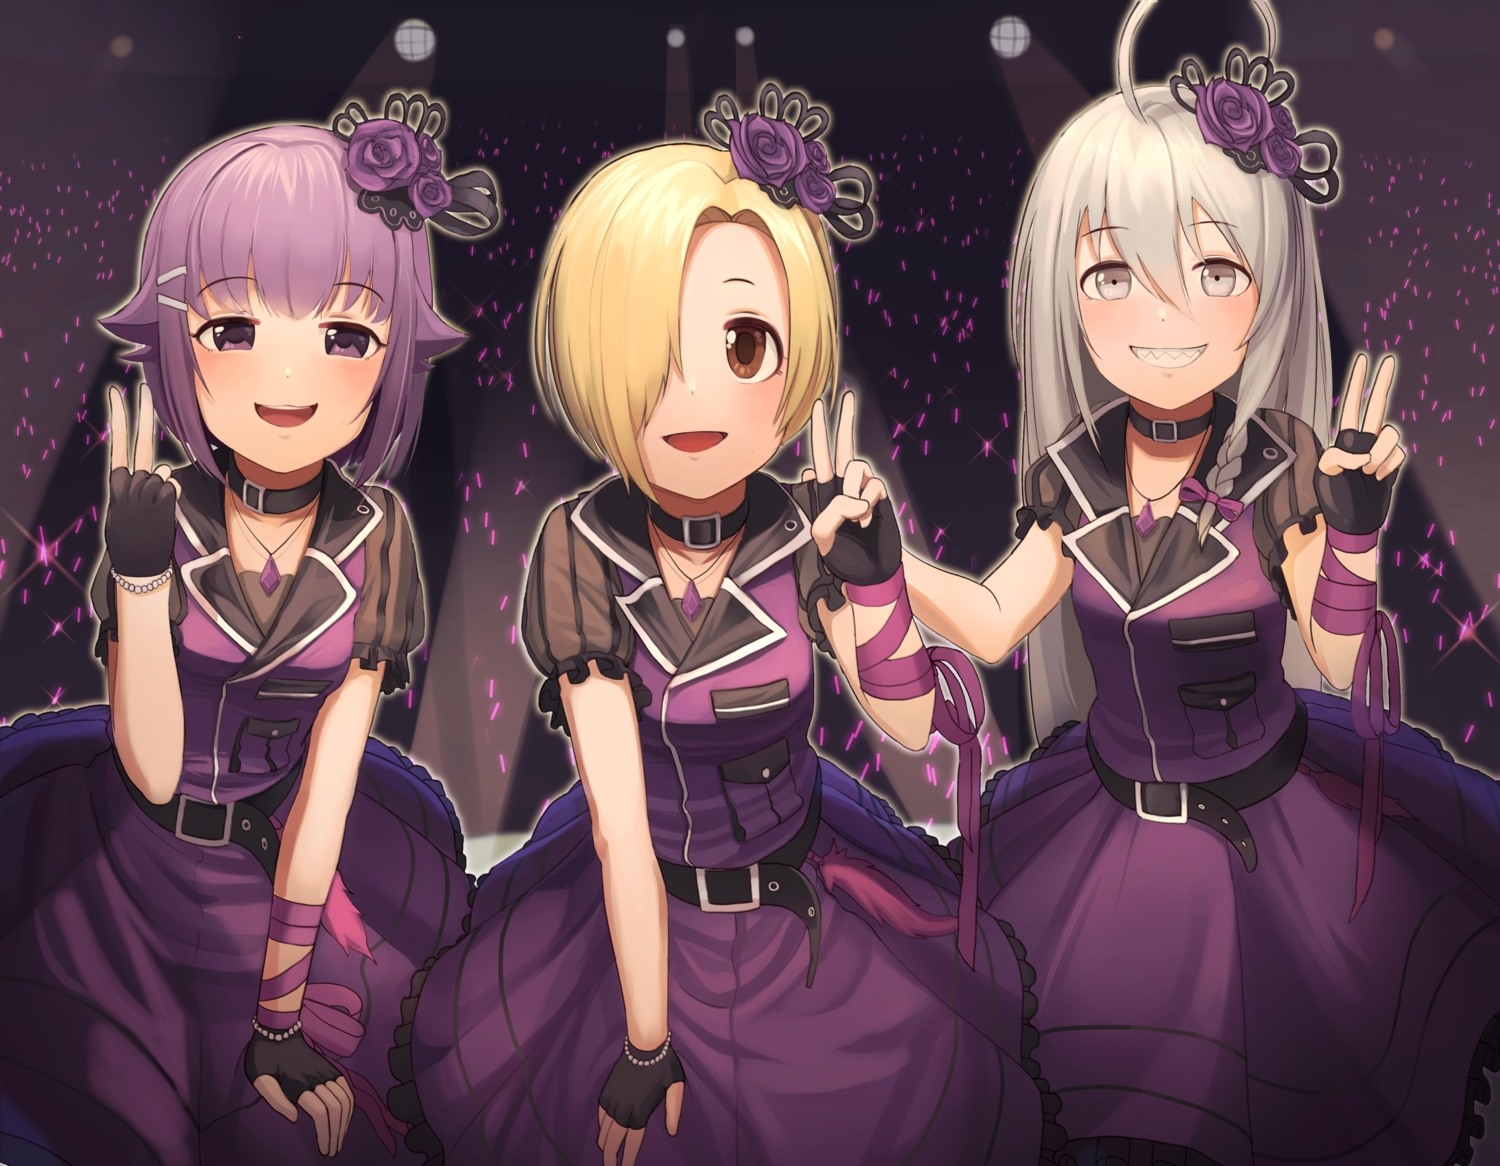 blonde_hair brown_eyes collar dress gloves goback gray_eyes gray_hair hoshi_shouko idolmaster idolmaster_cinderella_girls koshimizu_sachiko long_hair necklace purple_eyes purple_hair ribbons shirasaka_koume short_hair uniform wristwear